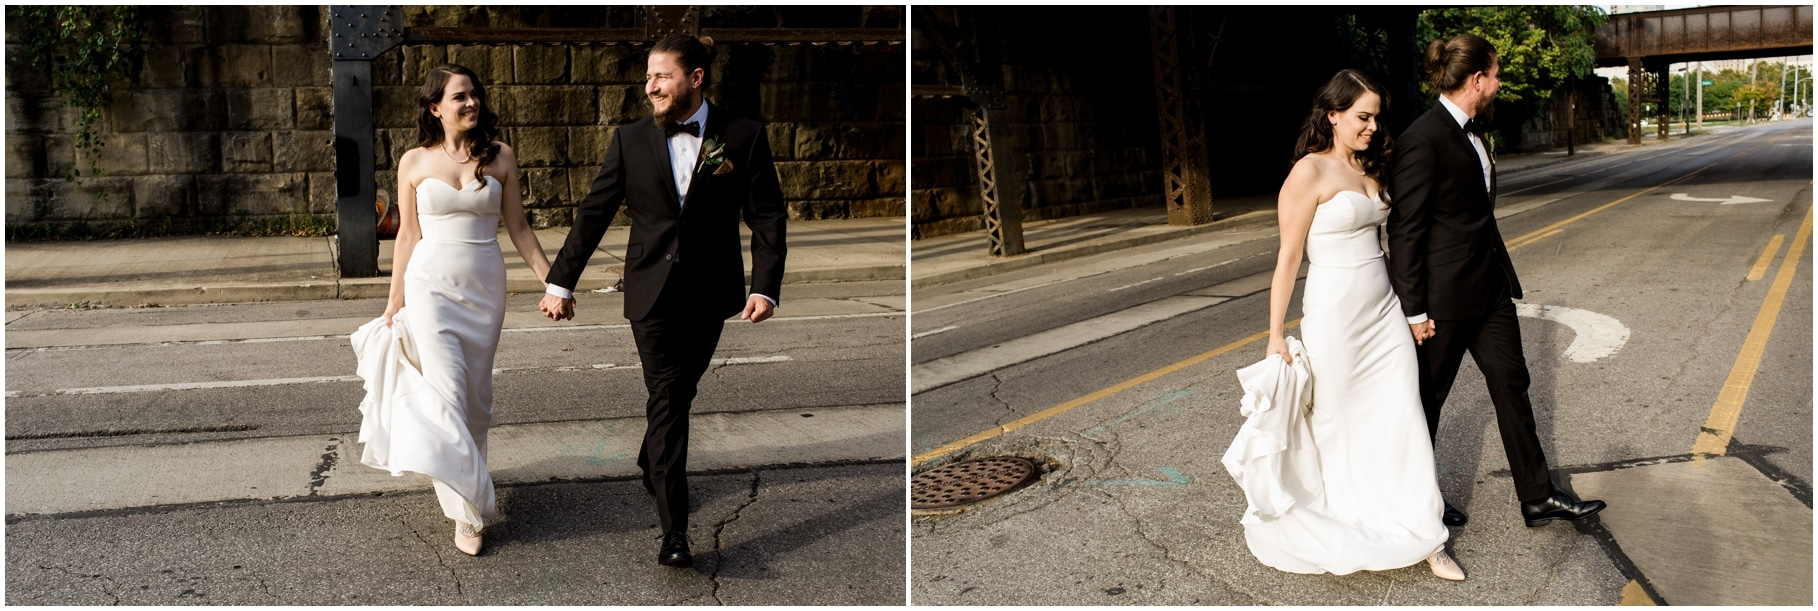 adam lowe photography, columbus, ohio, wedding photographer, stylish, bride and groom, strongwater, moody, pursuit, enzoani, the flowerman, bosc and brie